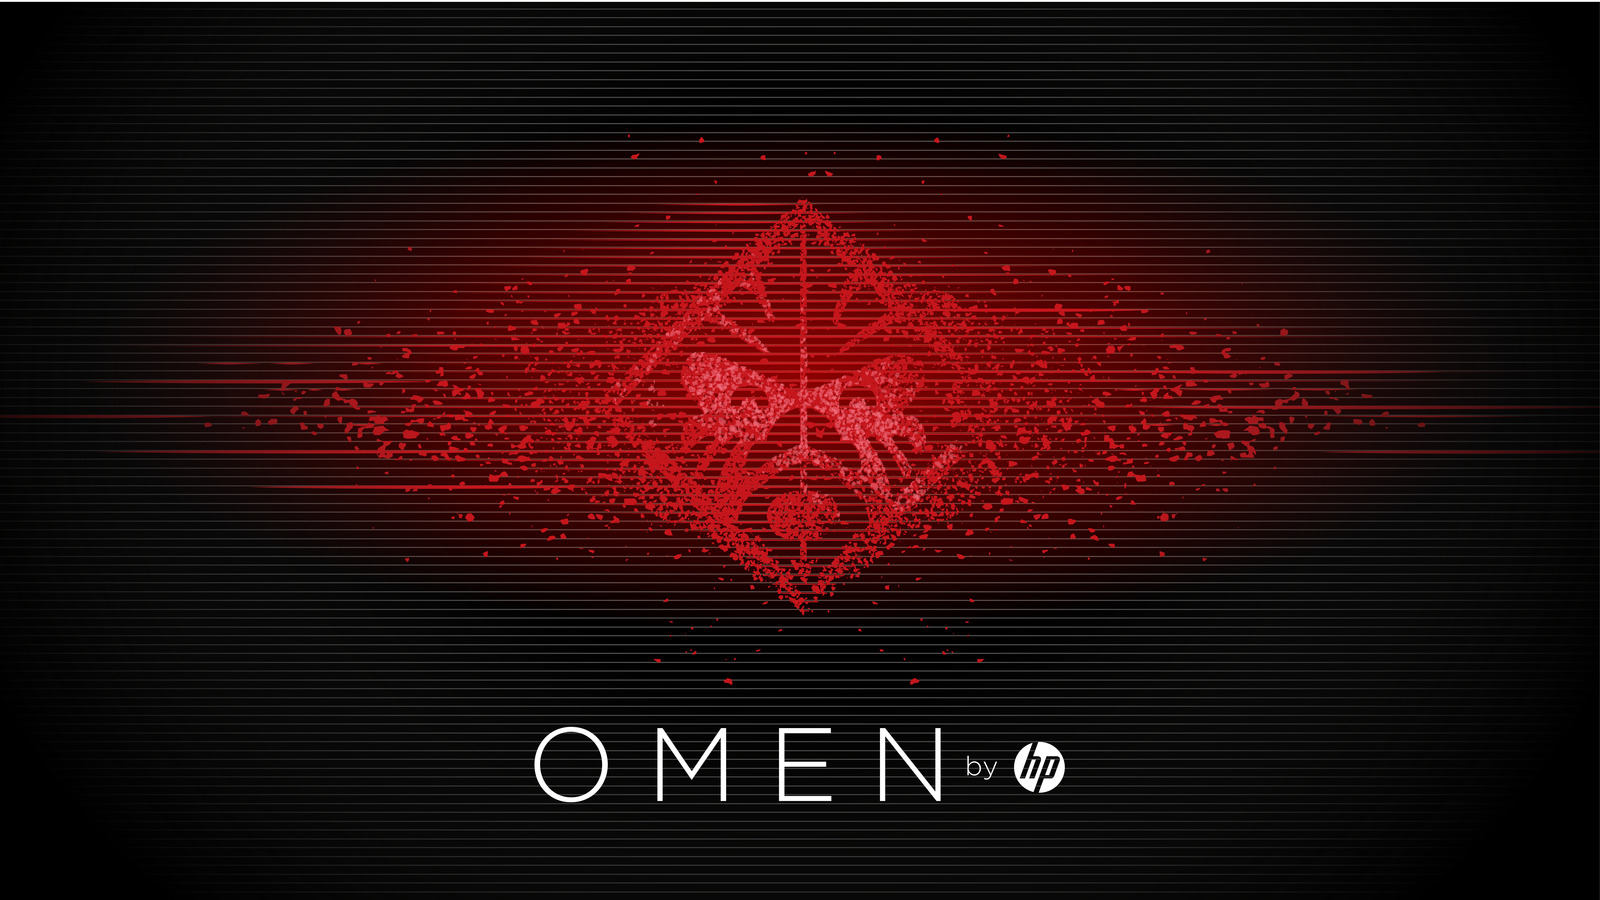 Omen_gaming_screen_RD1_BS_V1-01.jpg